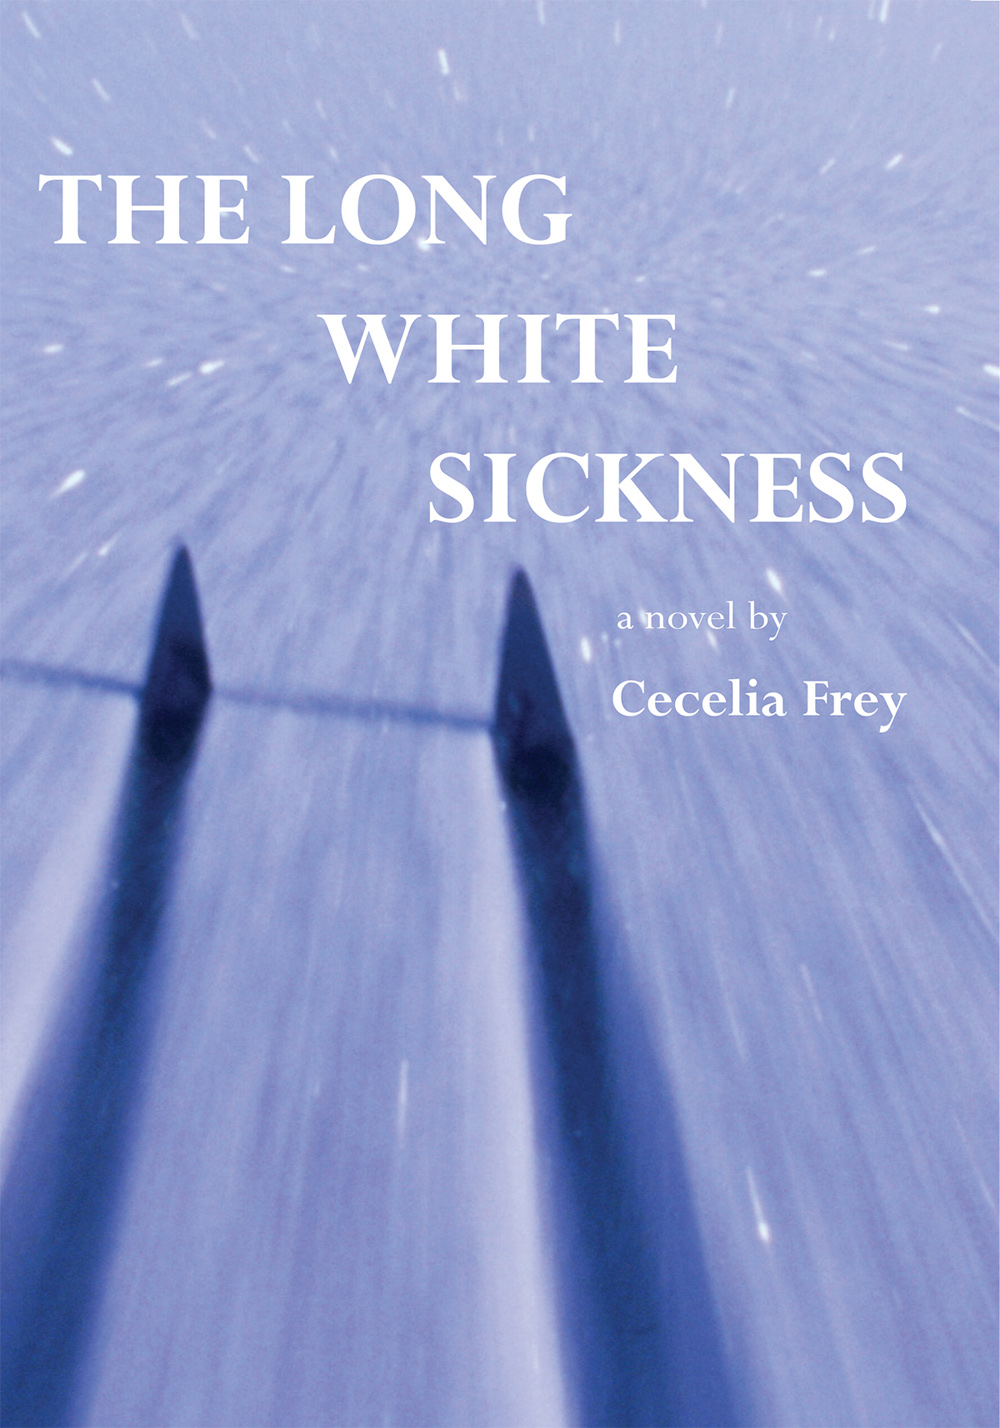 The Long White Sickness